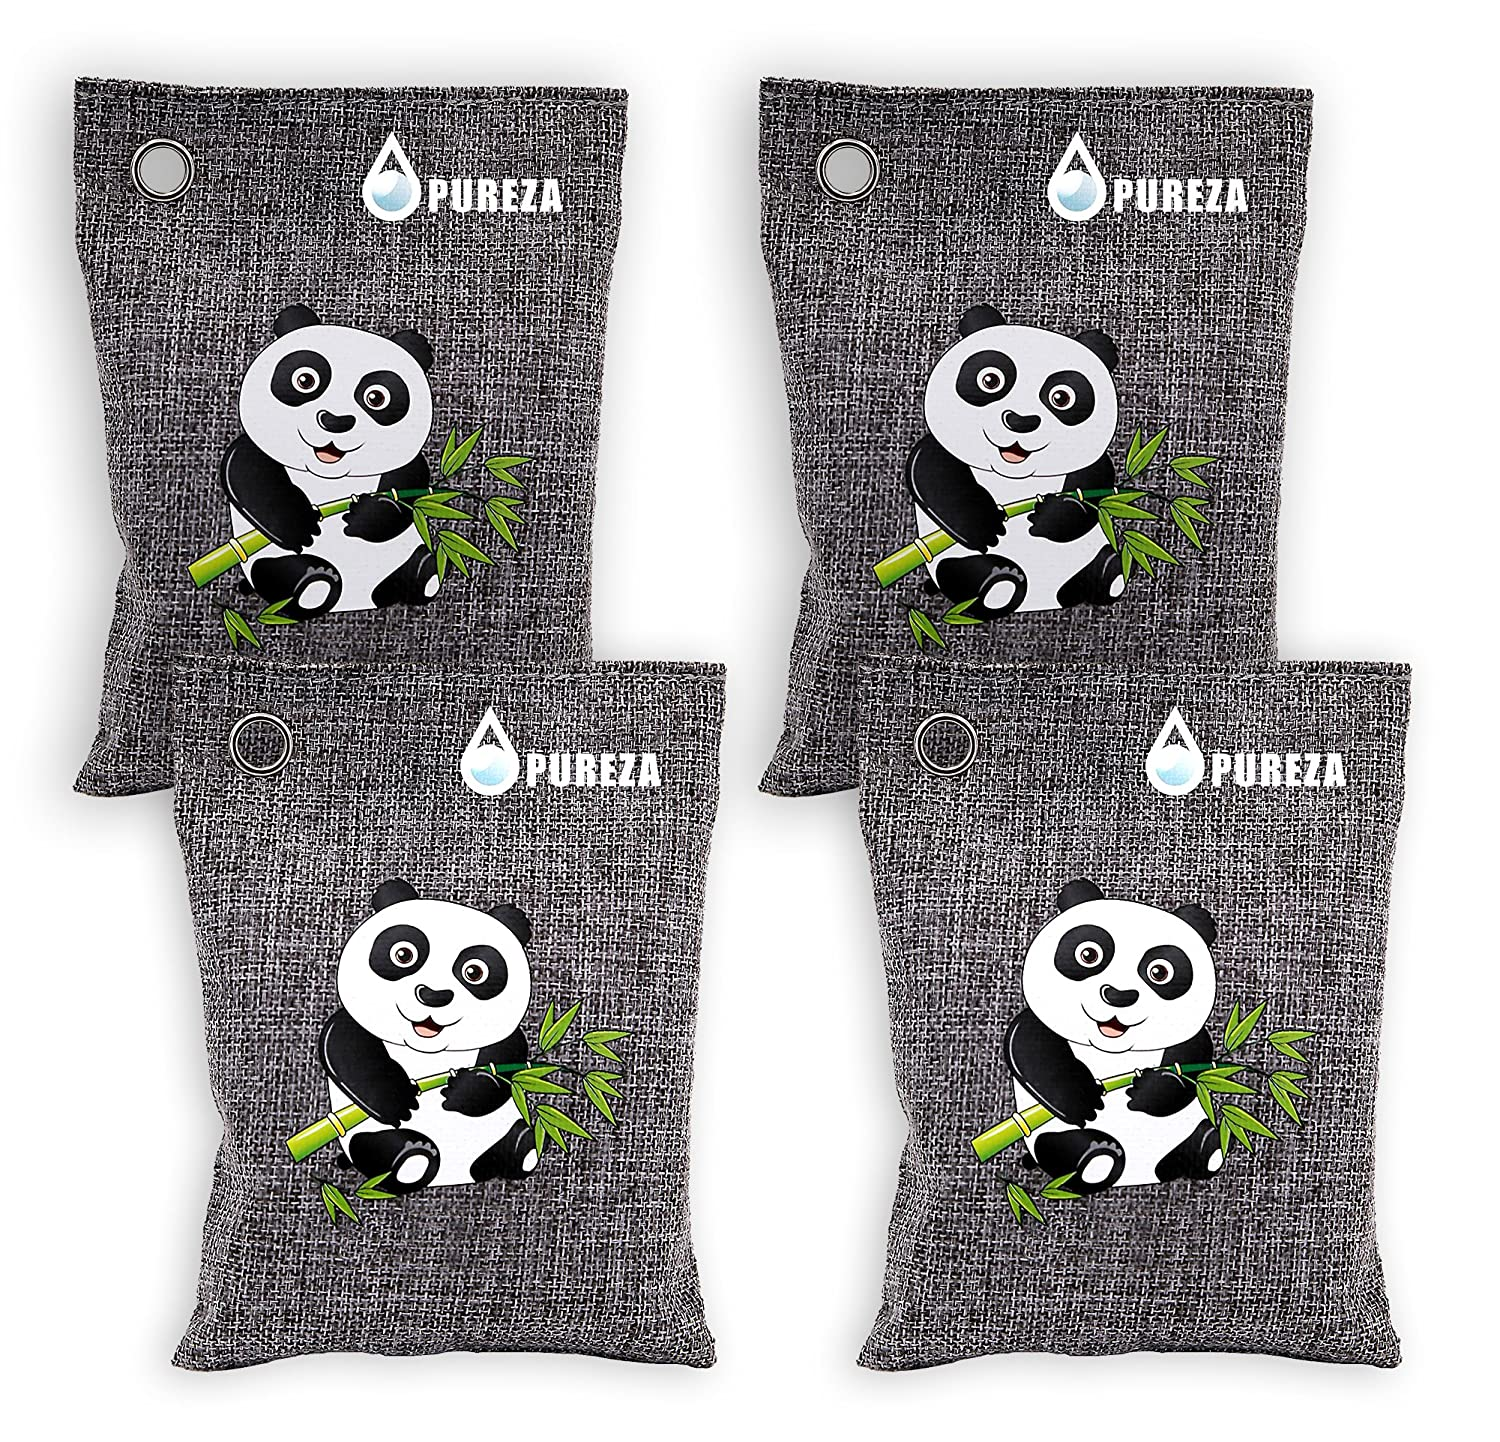 Nature Fresh Air Purifying Bag. Odor Eliminator for Cars, Closets, Bathrooms and Pet Areas.Bamboo Charcoal Bags, Captures and Eliminates Odors. By Pureza, Pack of 2